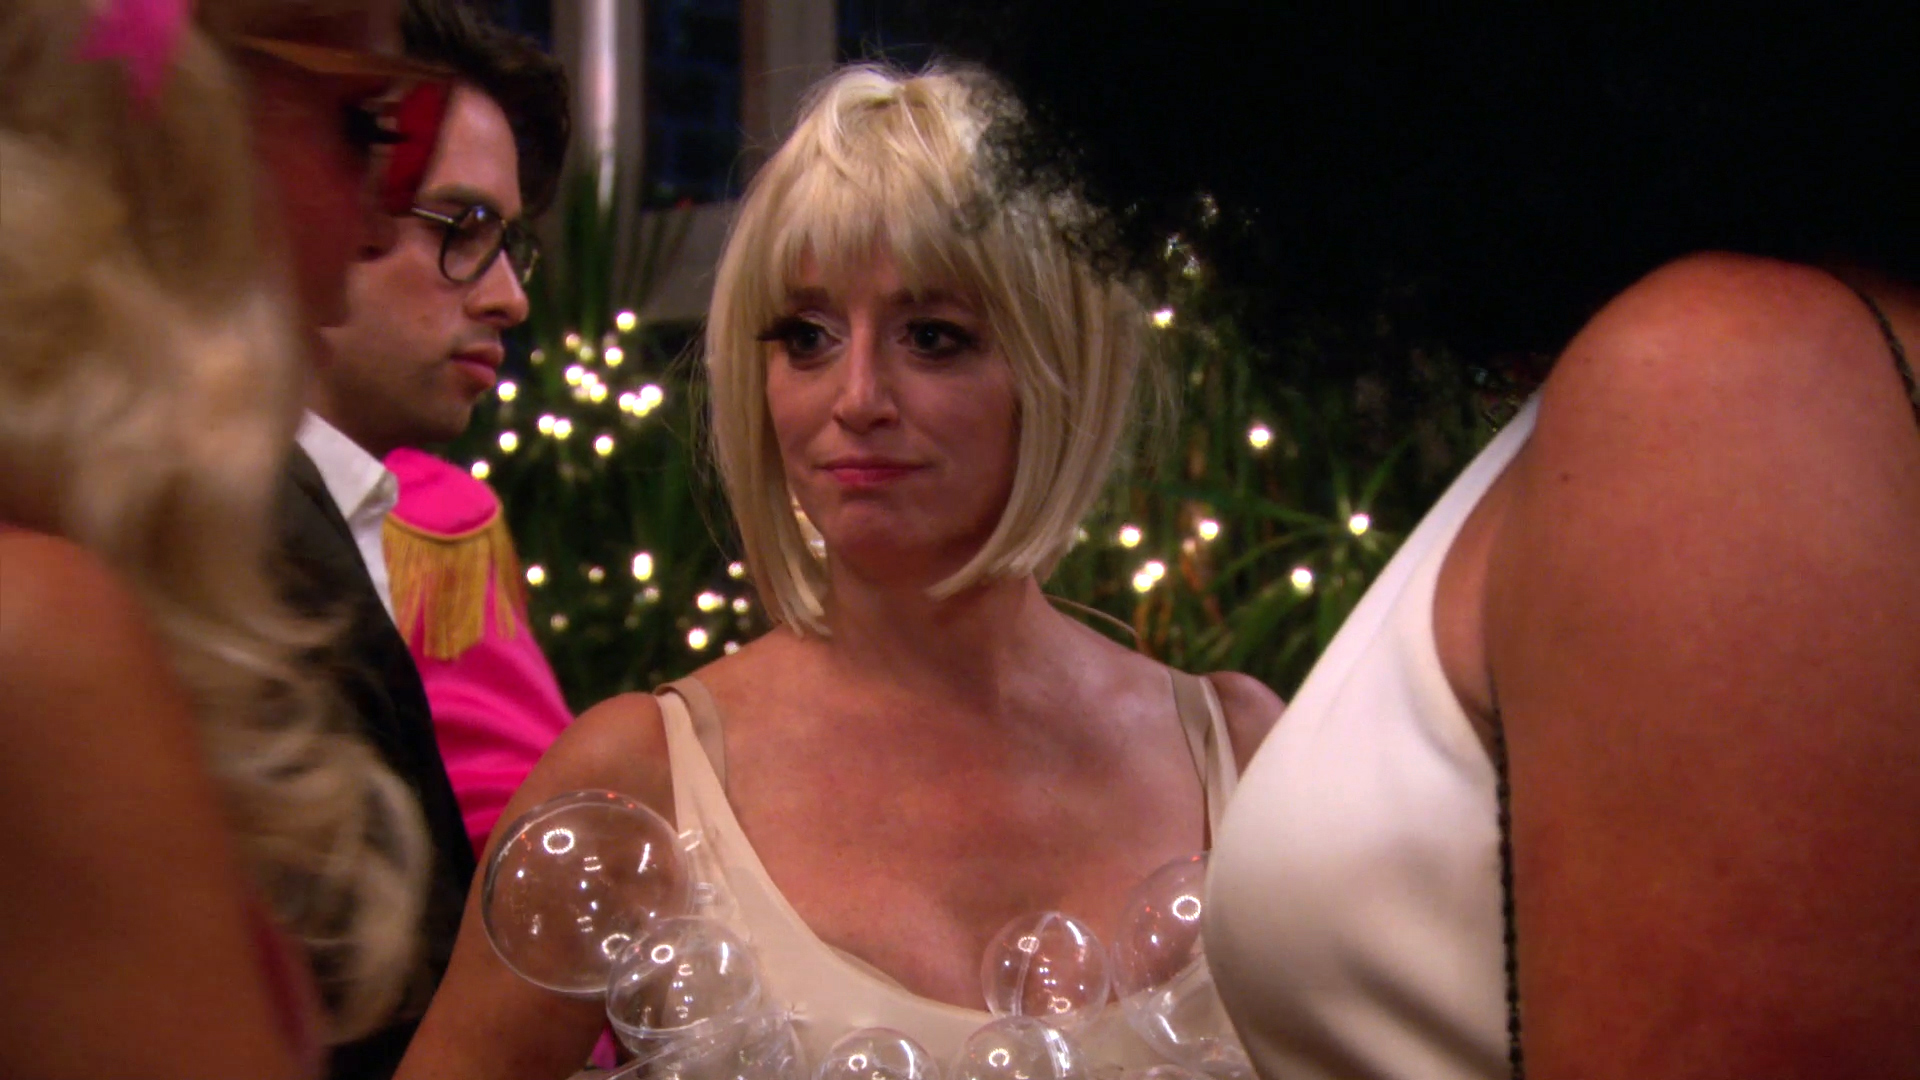 Adam Sandler, Andy Samberg, and Dorinda's Bubble Dress